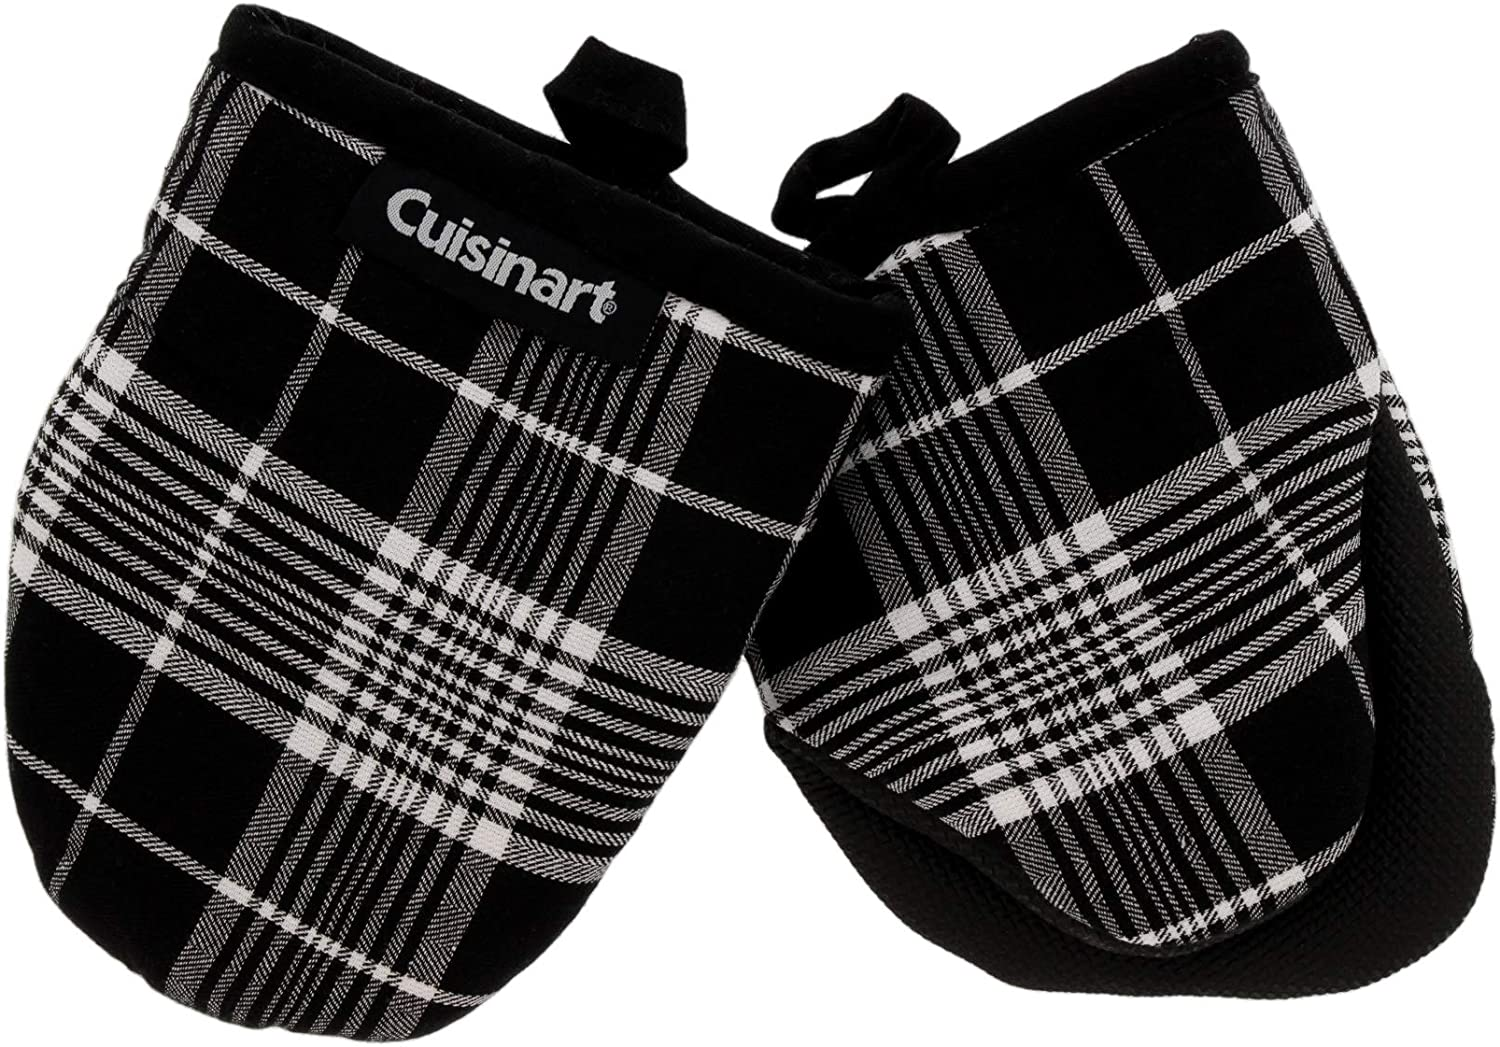 Cuisinart Neoprene Mini Oven Mitts, 2pk - Heat Resistant Oven Gloves Protect Hands and Surfaces with Non-Slip Grip and Hanging Loop-Ideal Set for Handling Hot Cookware, Bakeware- Glen Plaid, Black